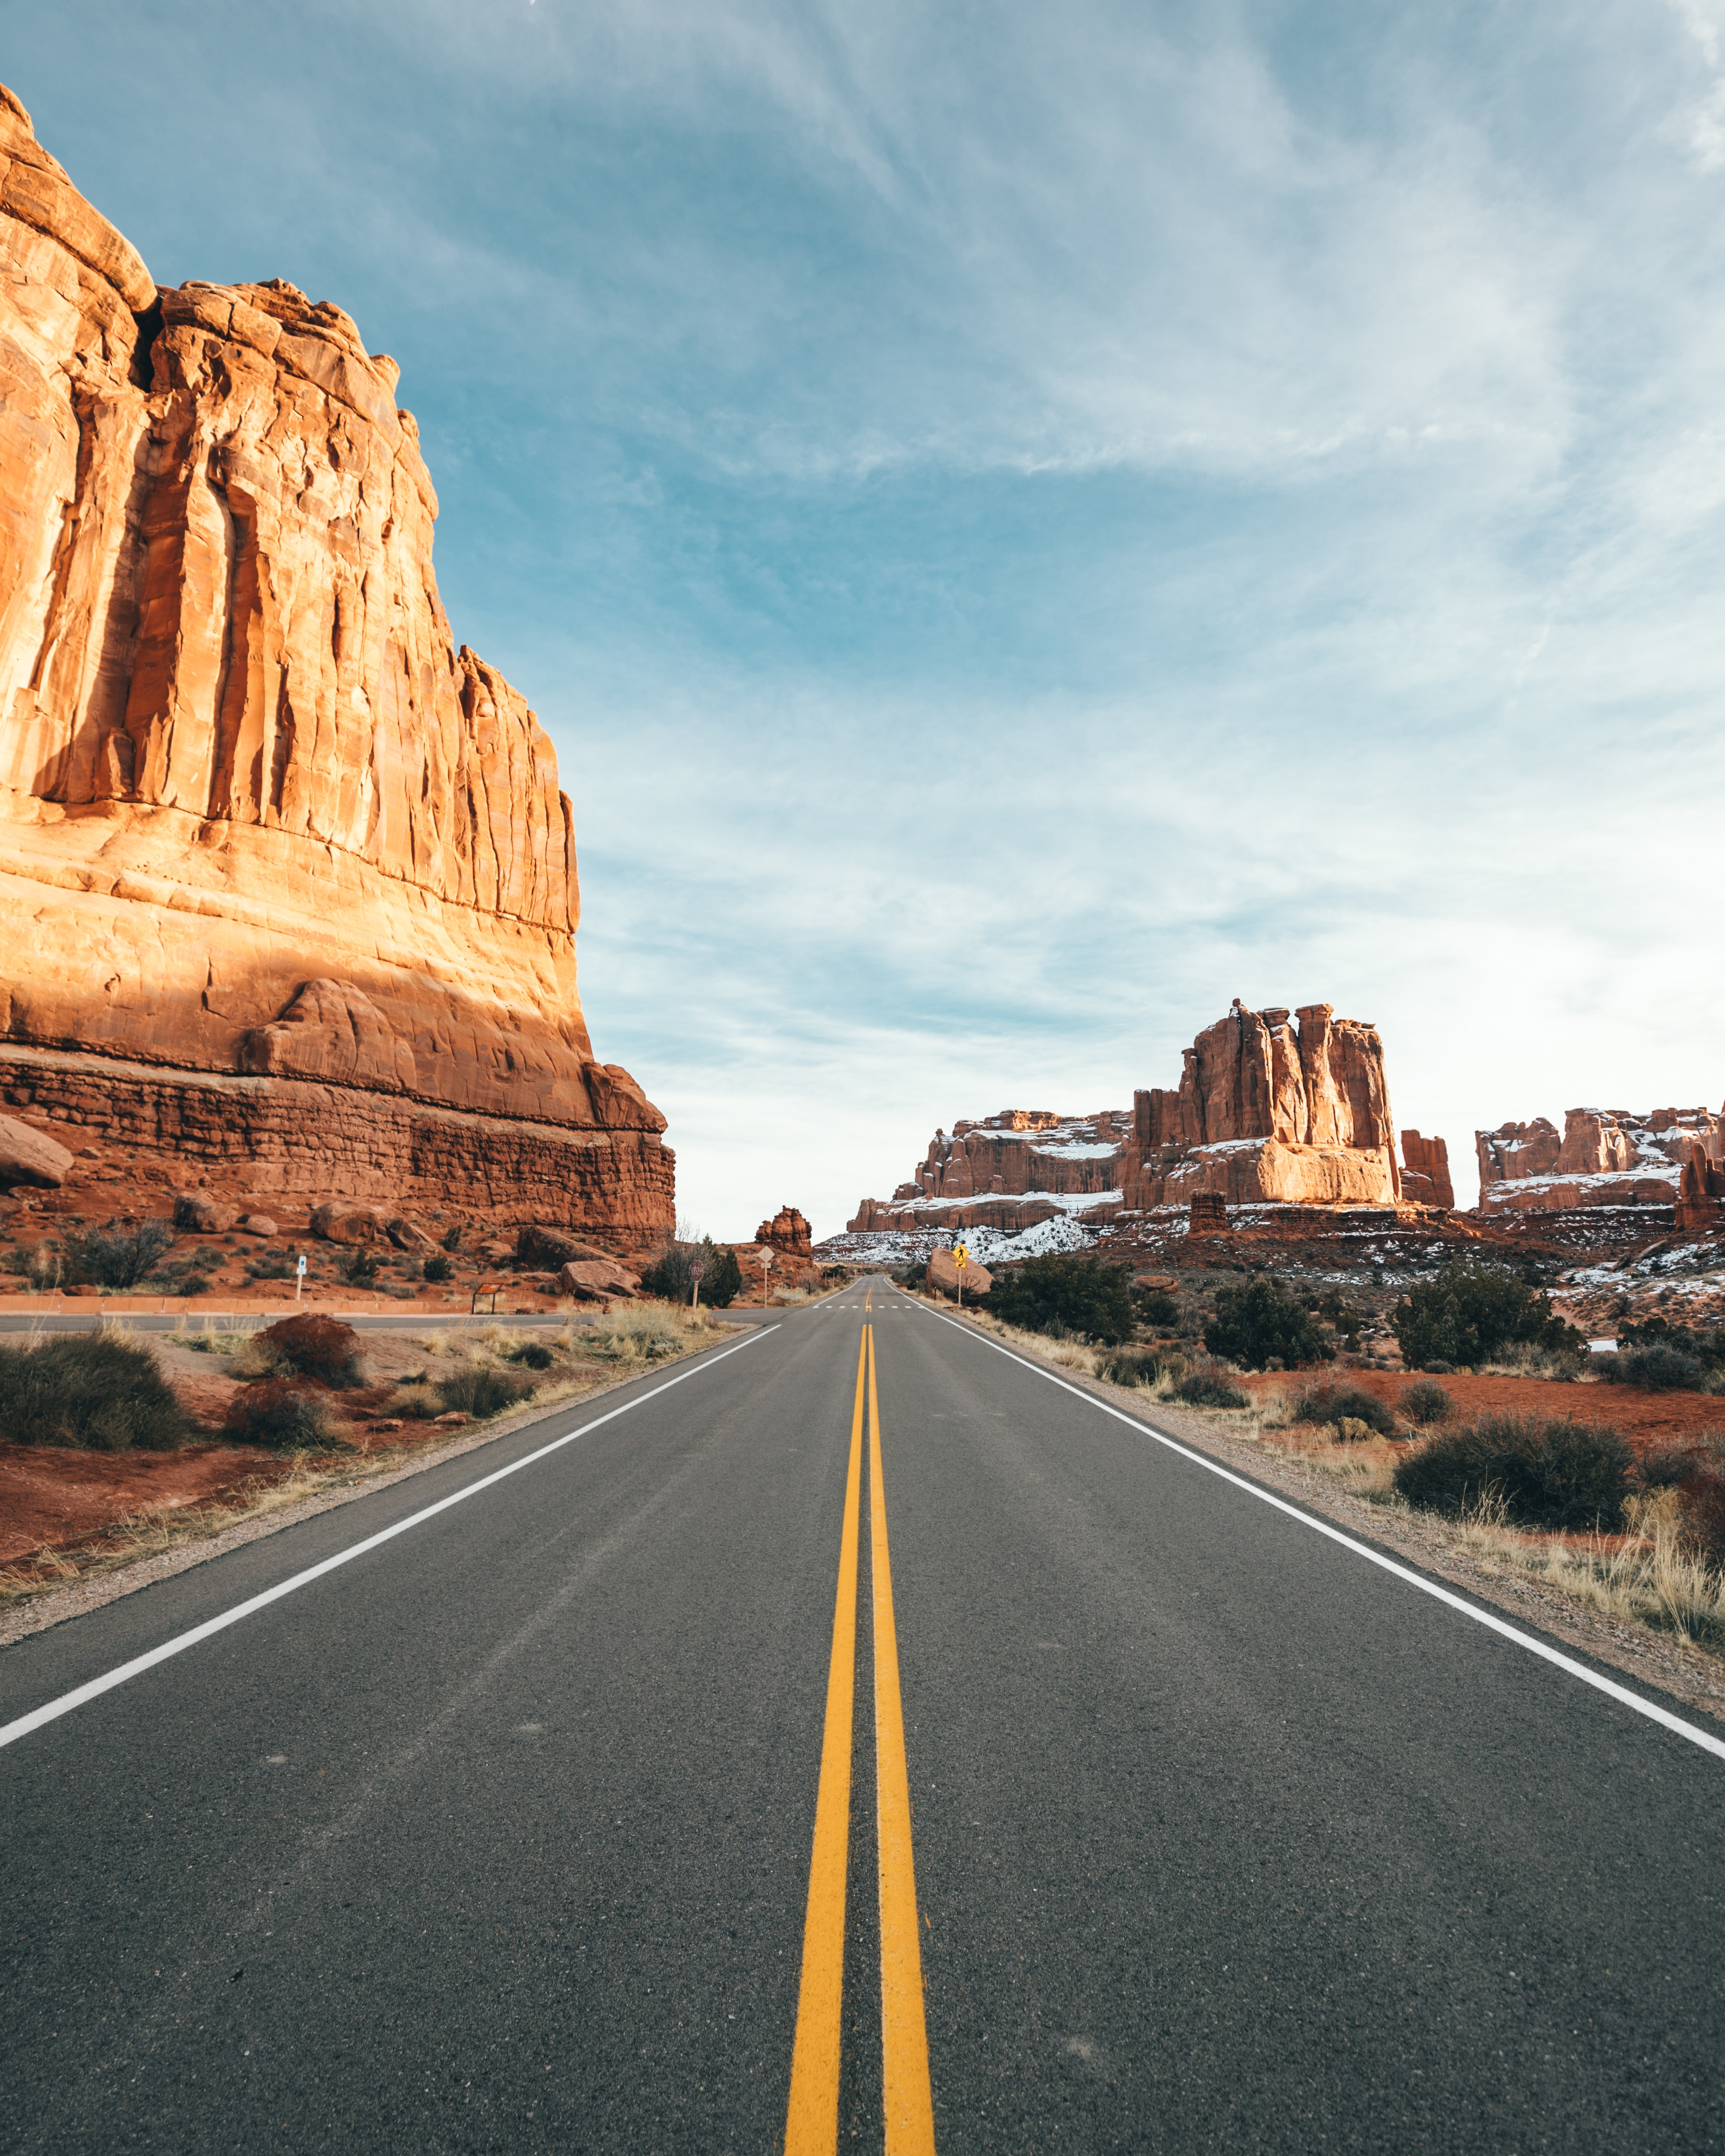 67282 download wallpaper Road, Canyon, Rocks, Nature, Desert screensavers and pictures for free